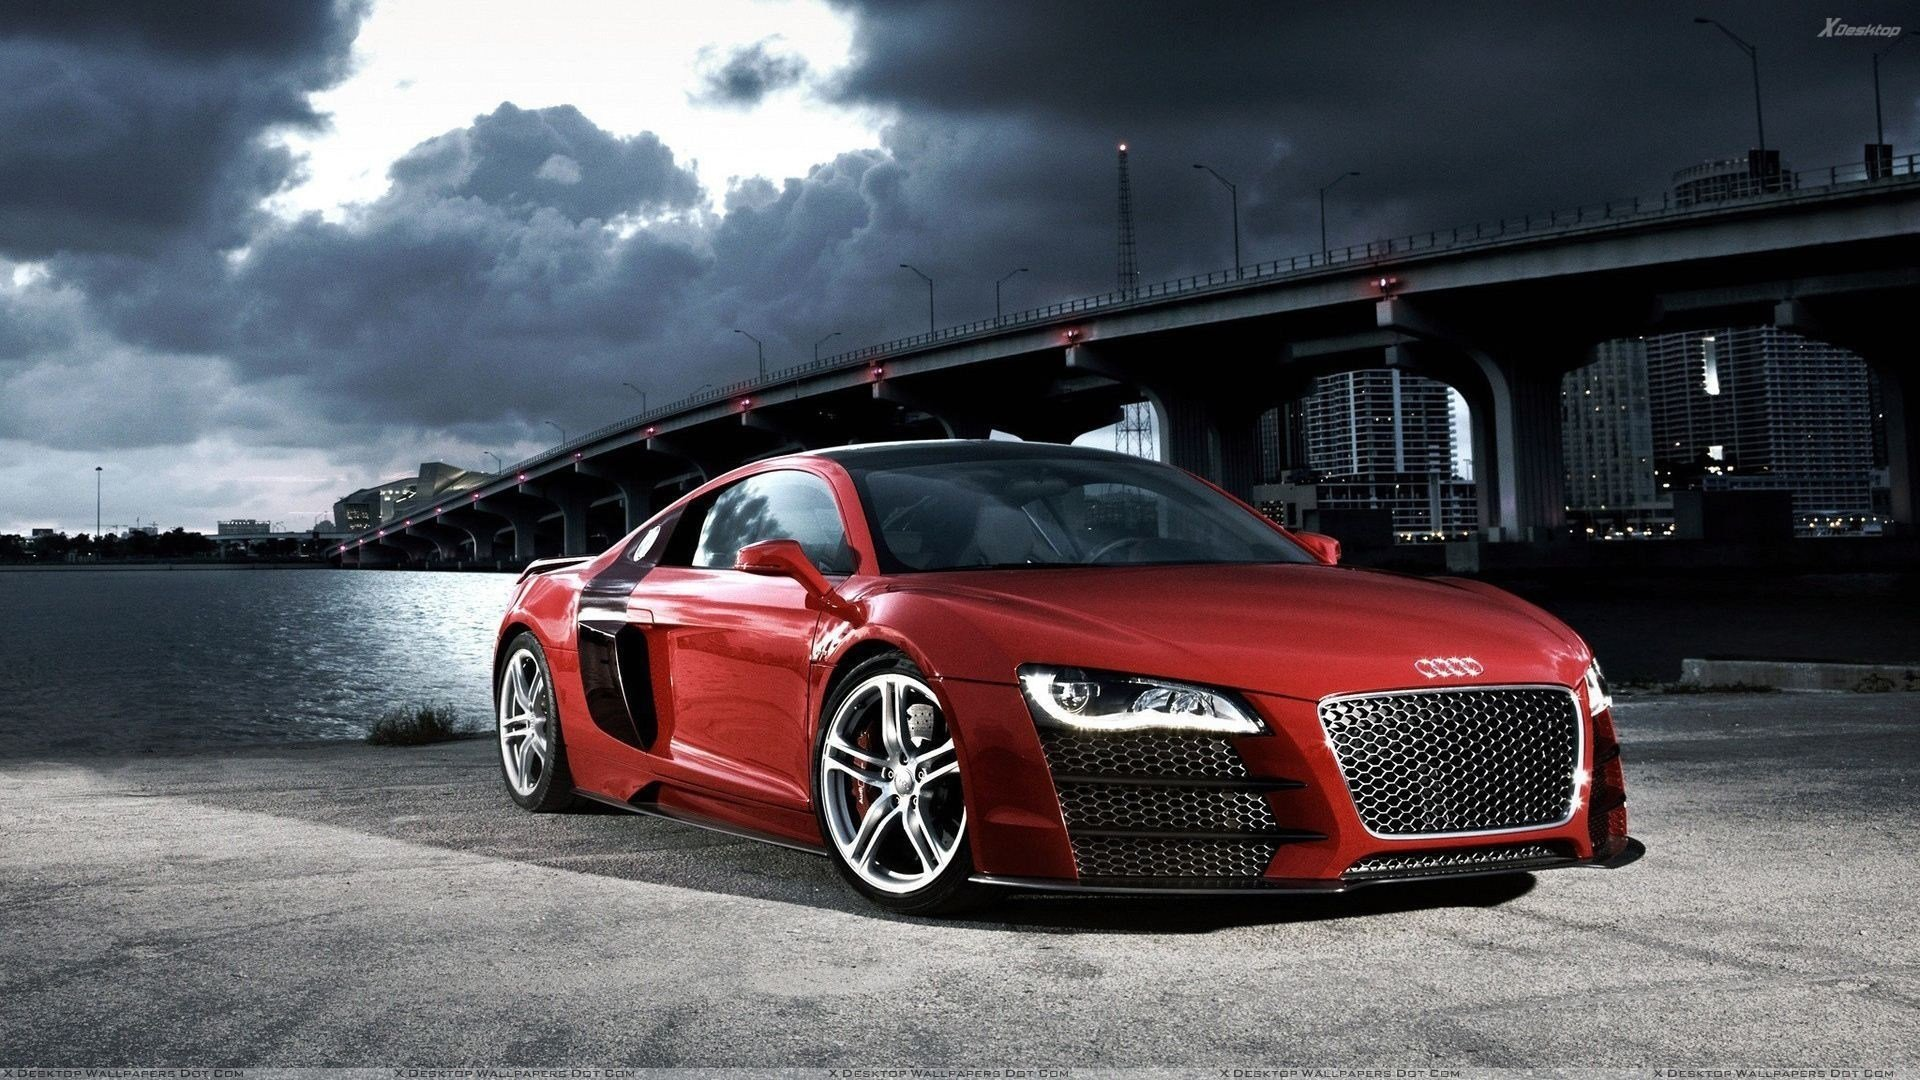 Latest Audi R8 Auto Wallpaper Allwallpaper In 7820 Pc De Free Download